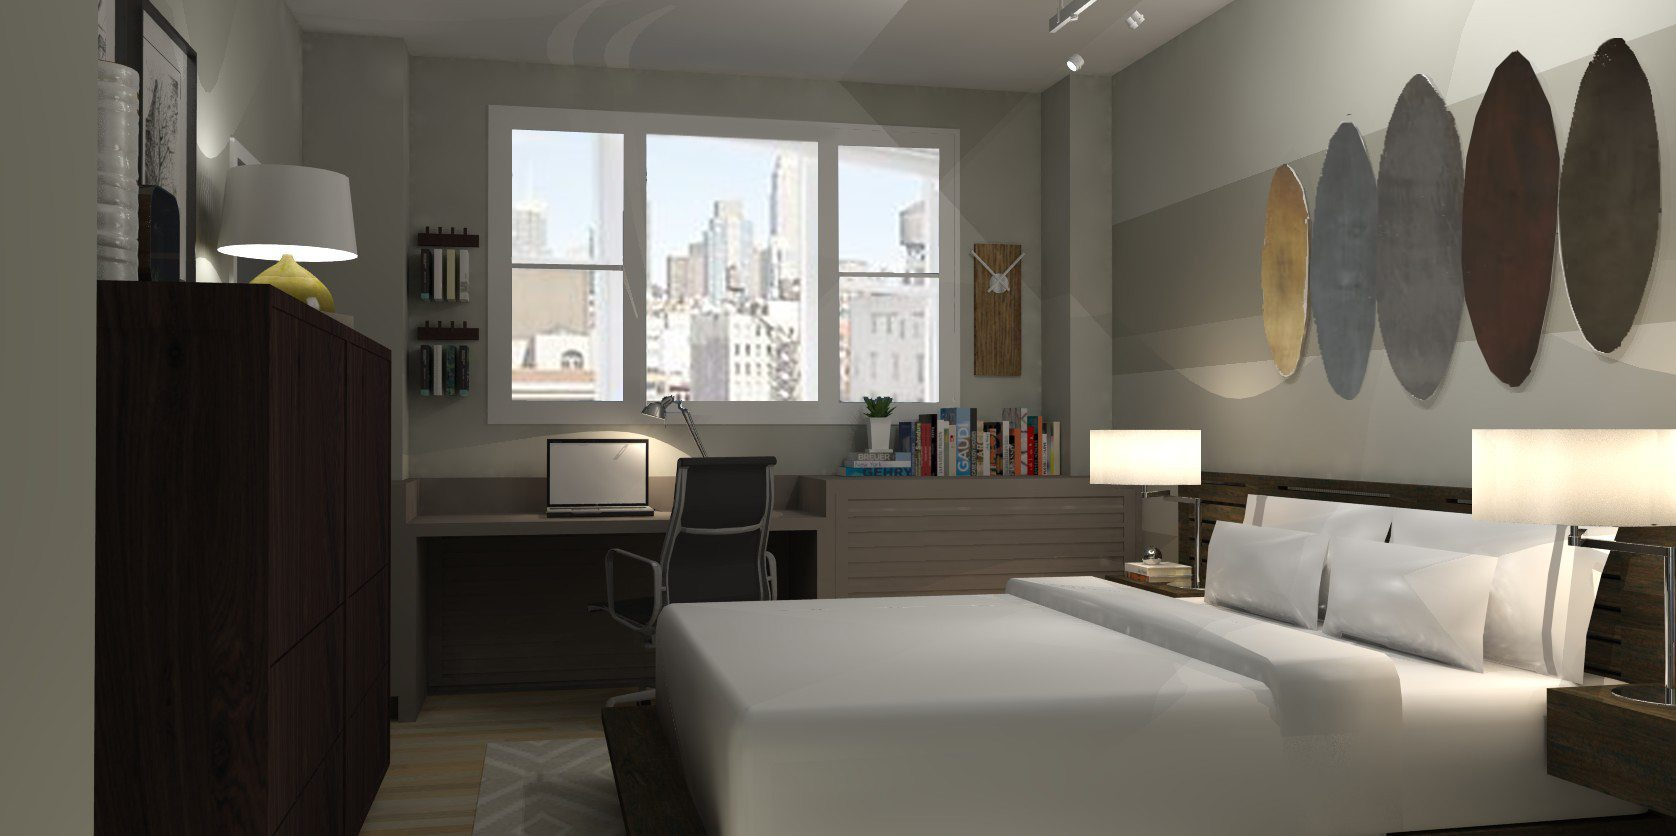 Loft Apartment Bedroom Industrial Modern A Space To Interiors Inside Ideas Interiors design about Everything [magnanprojects.com]